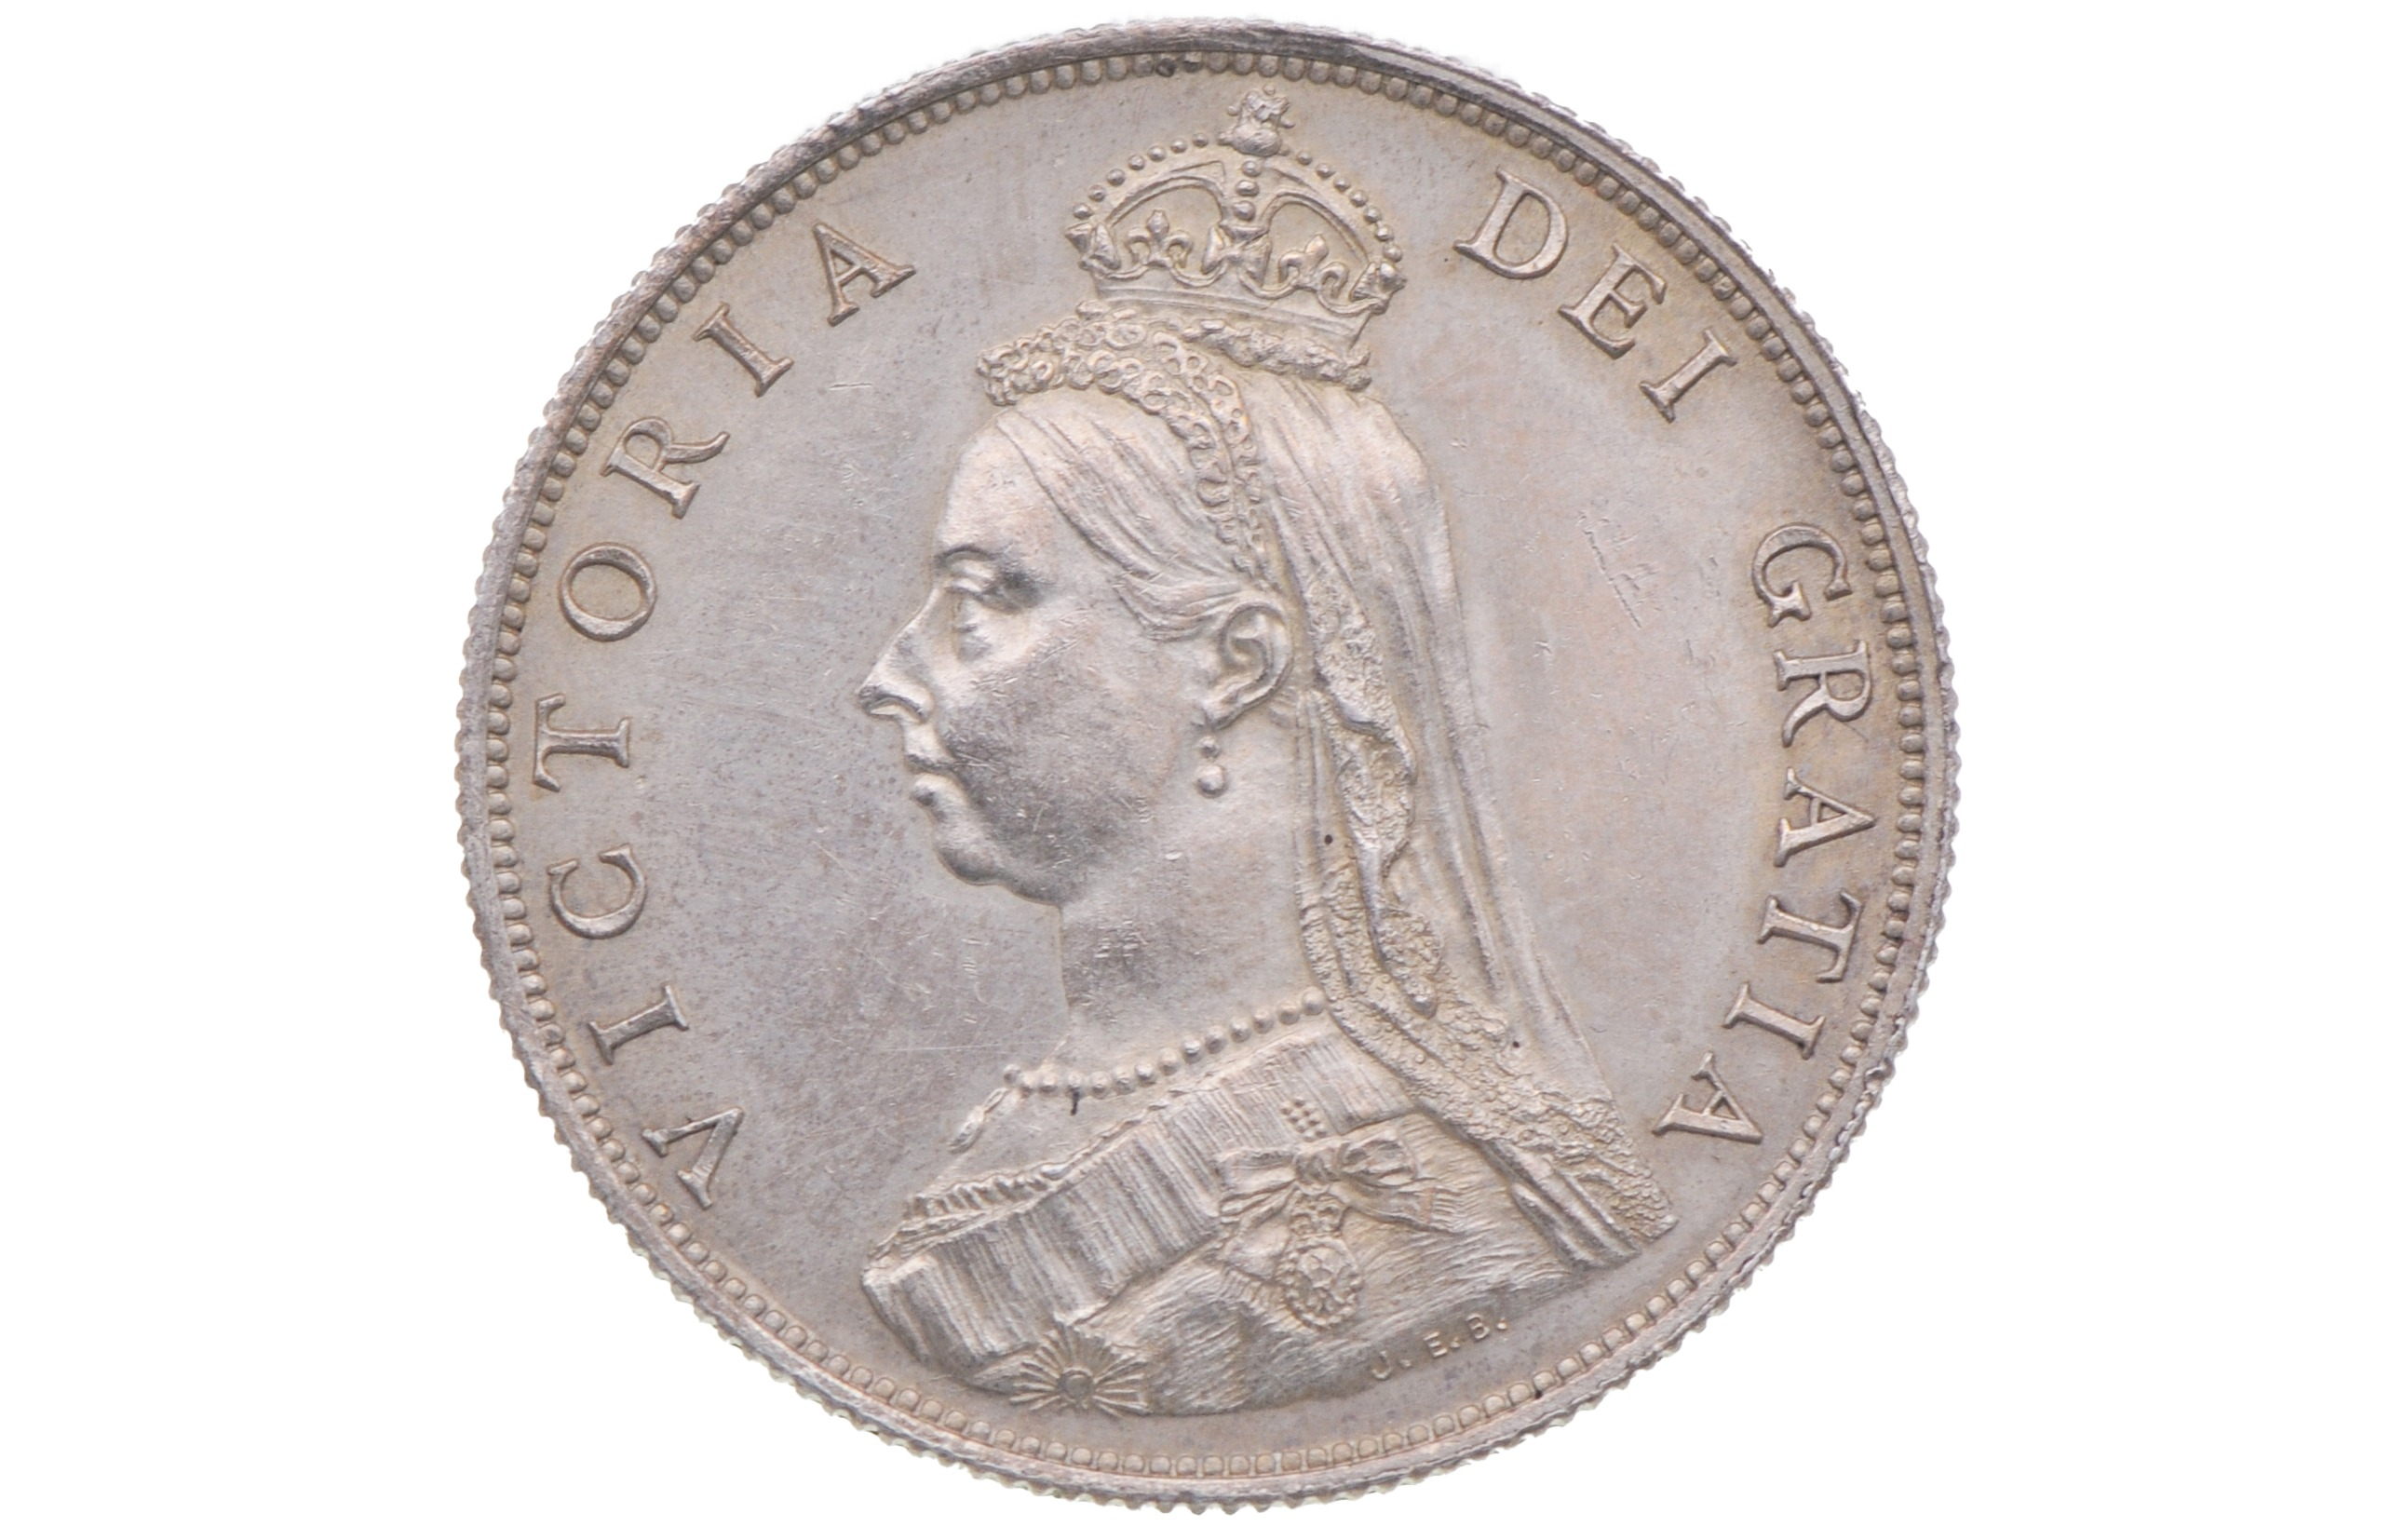 A shilling dating back before 1920 could be worth around £2.73